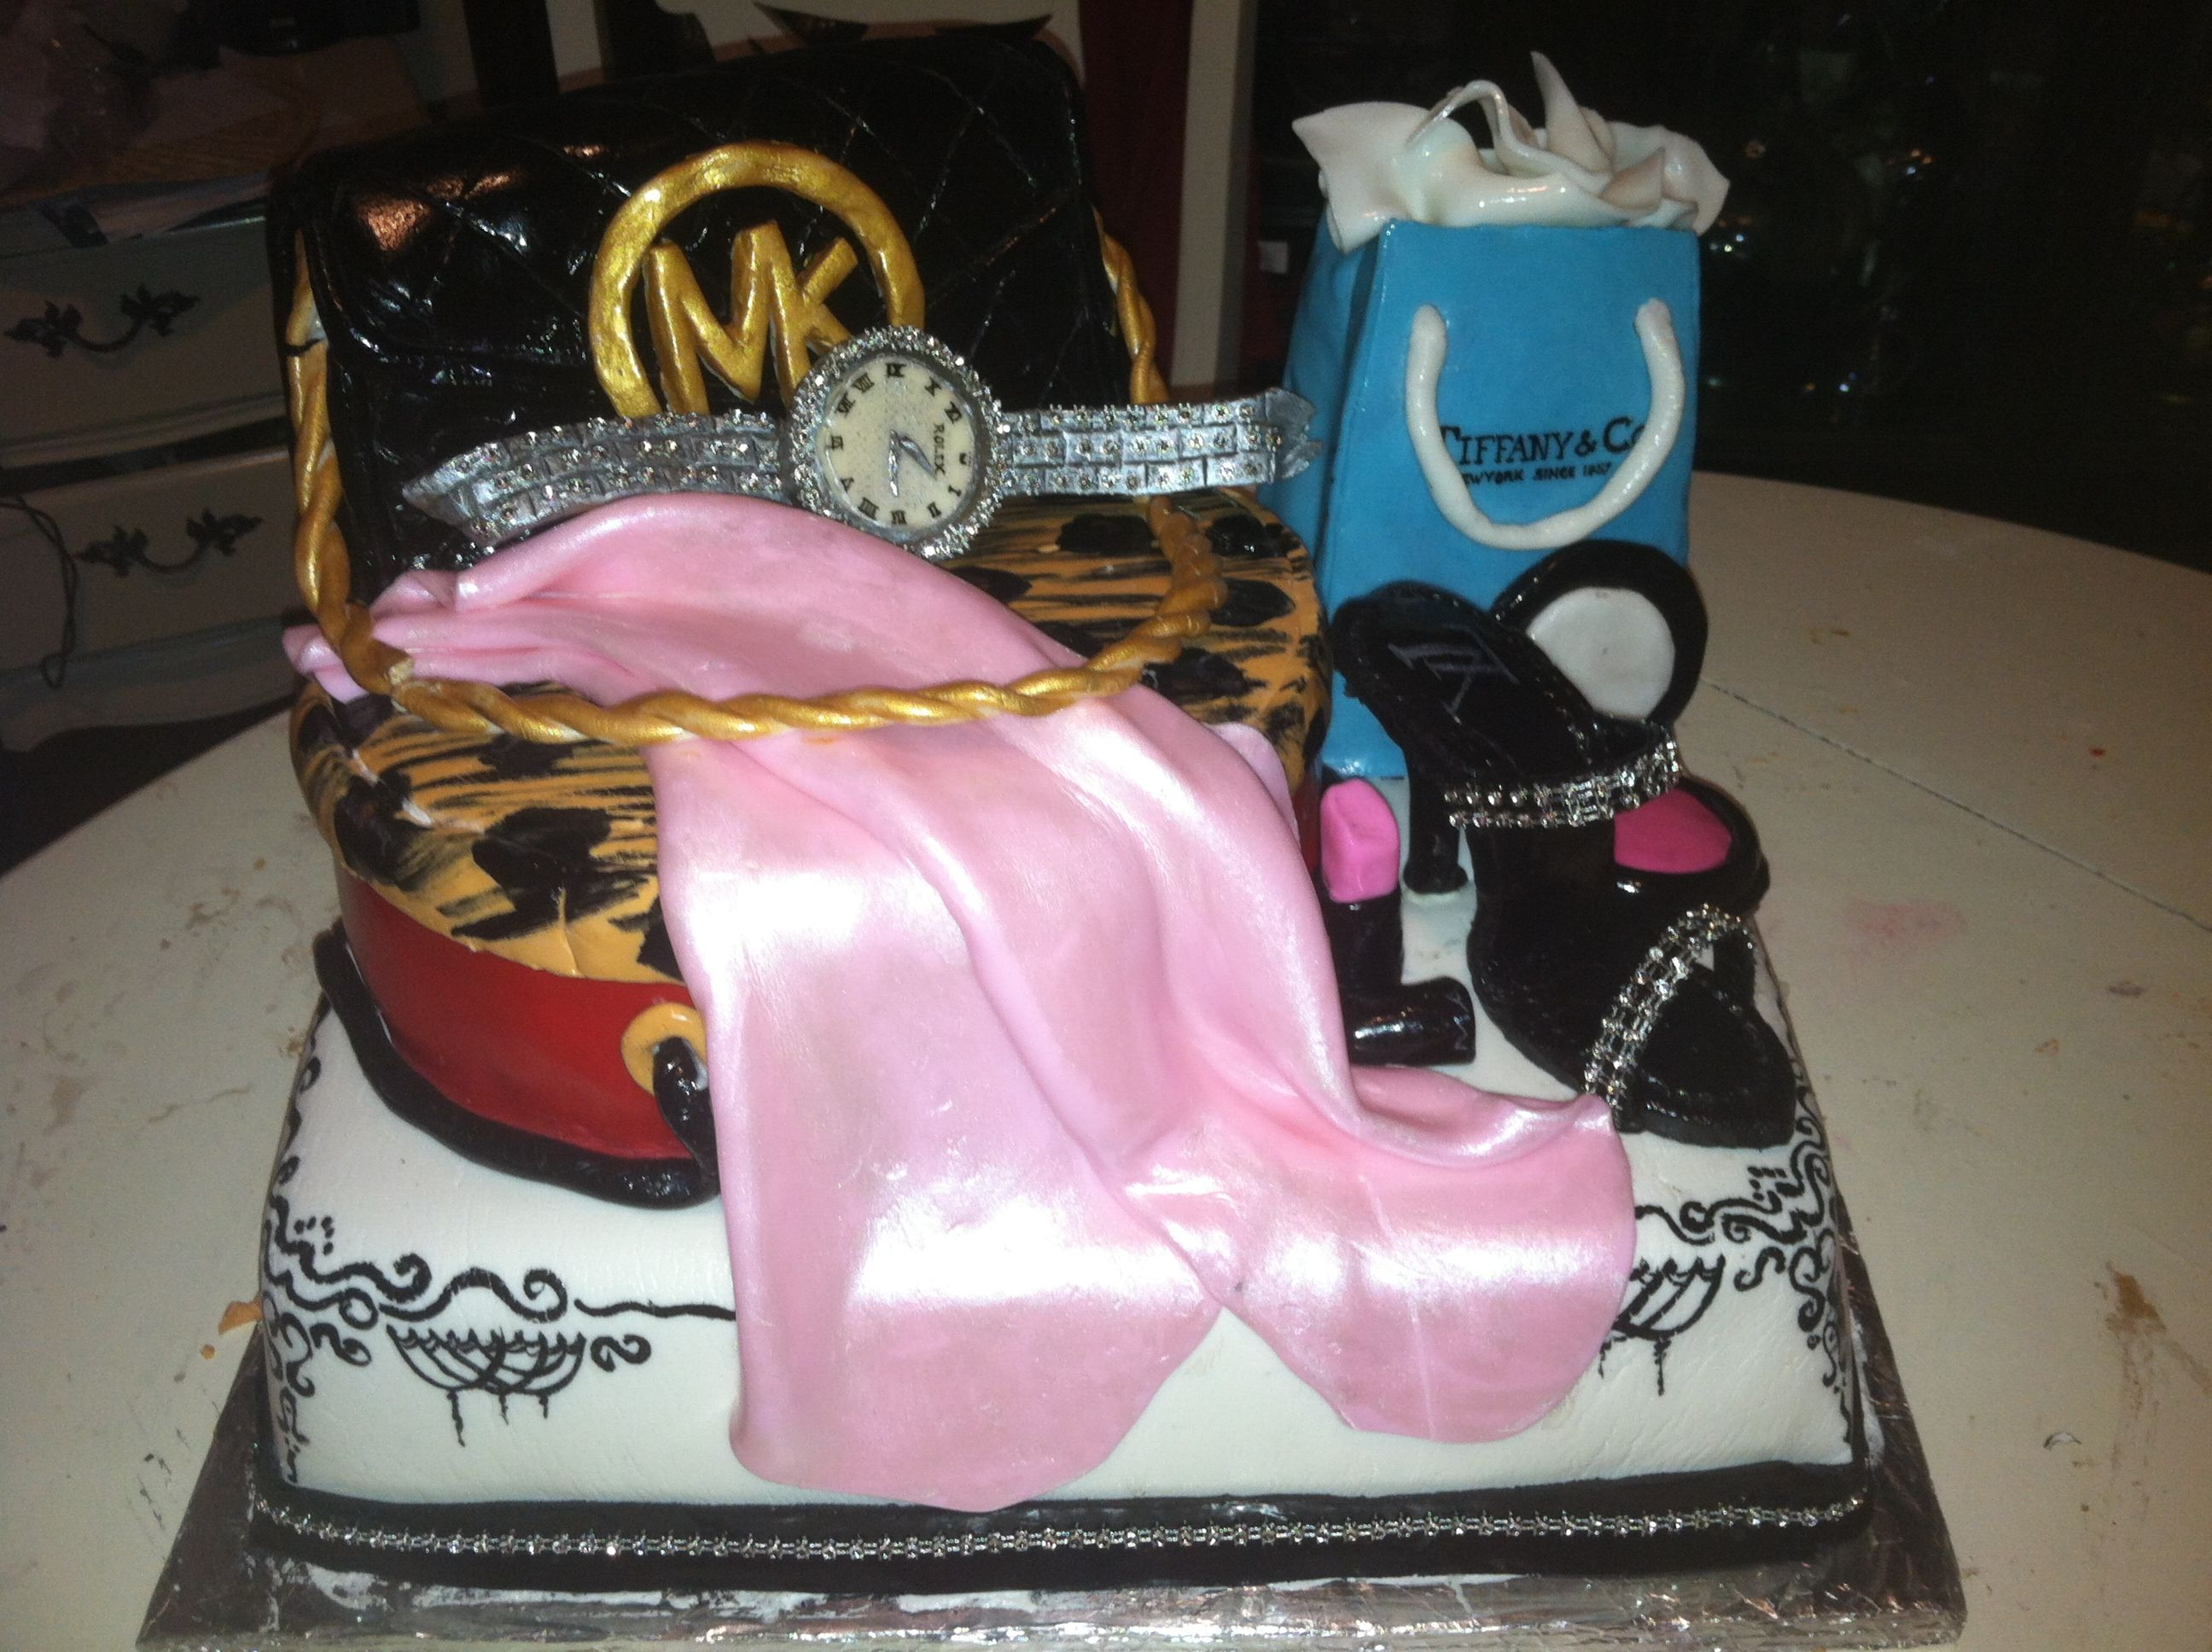 A female delight cake feat. Michael Kors bag , Rolex watch n many more edible items